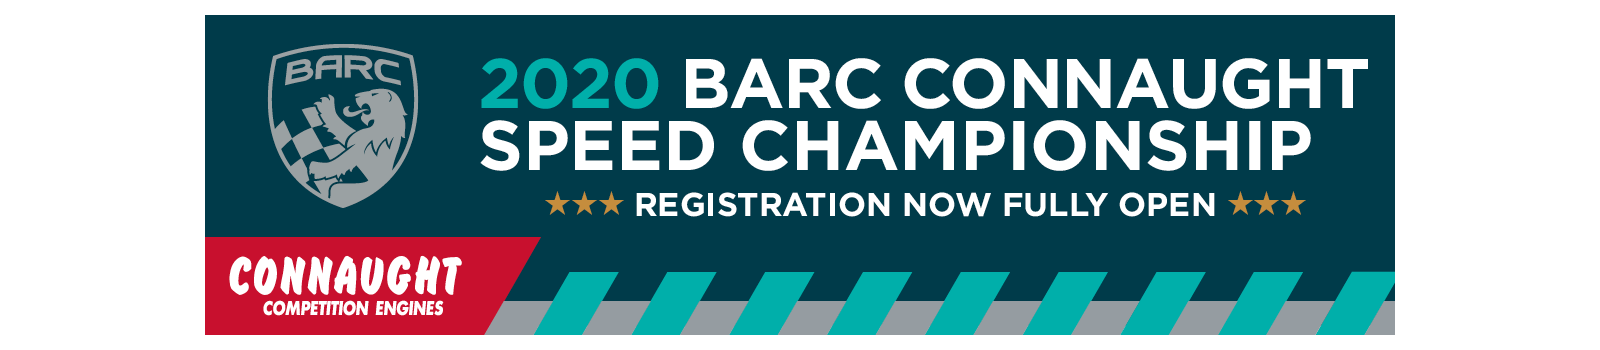 2020 BARC Connaught Speed Championship - Registration Now Fully Open